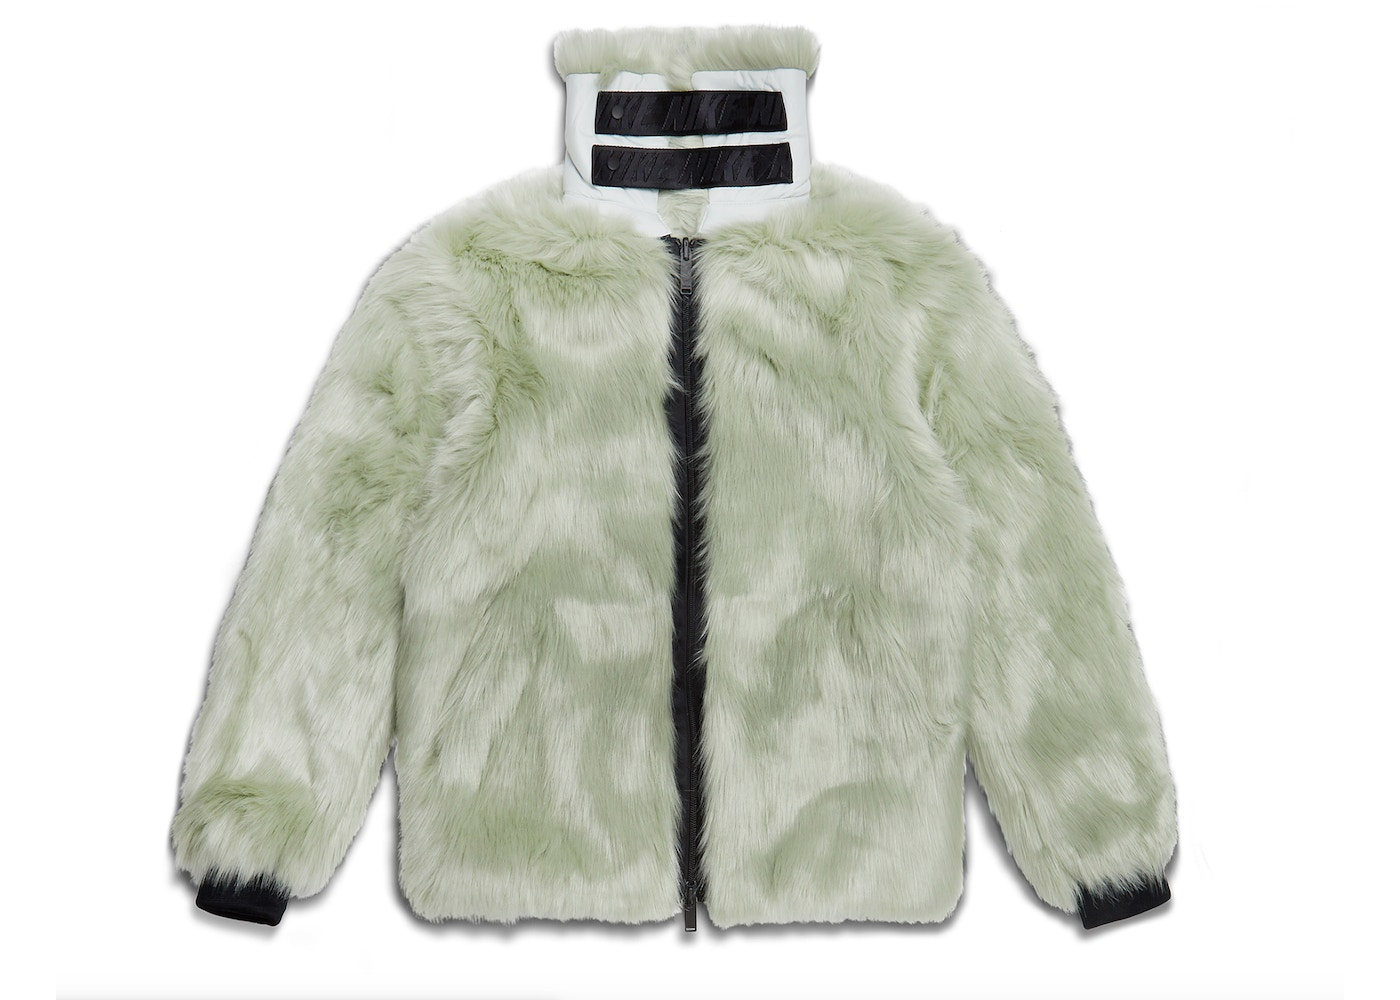 6f96dad8a082 Nike x Ambush Women's Reversible Faux Fur Coat Jade Horizon/Black - FW18